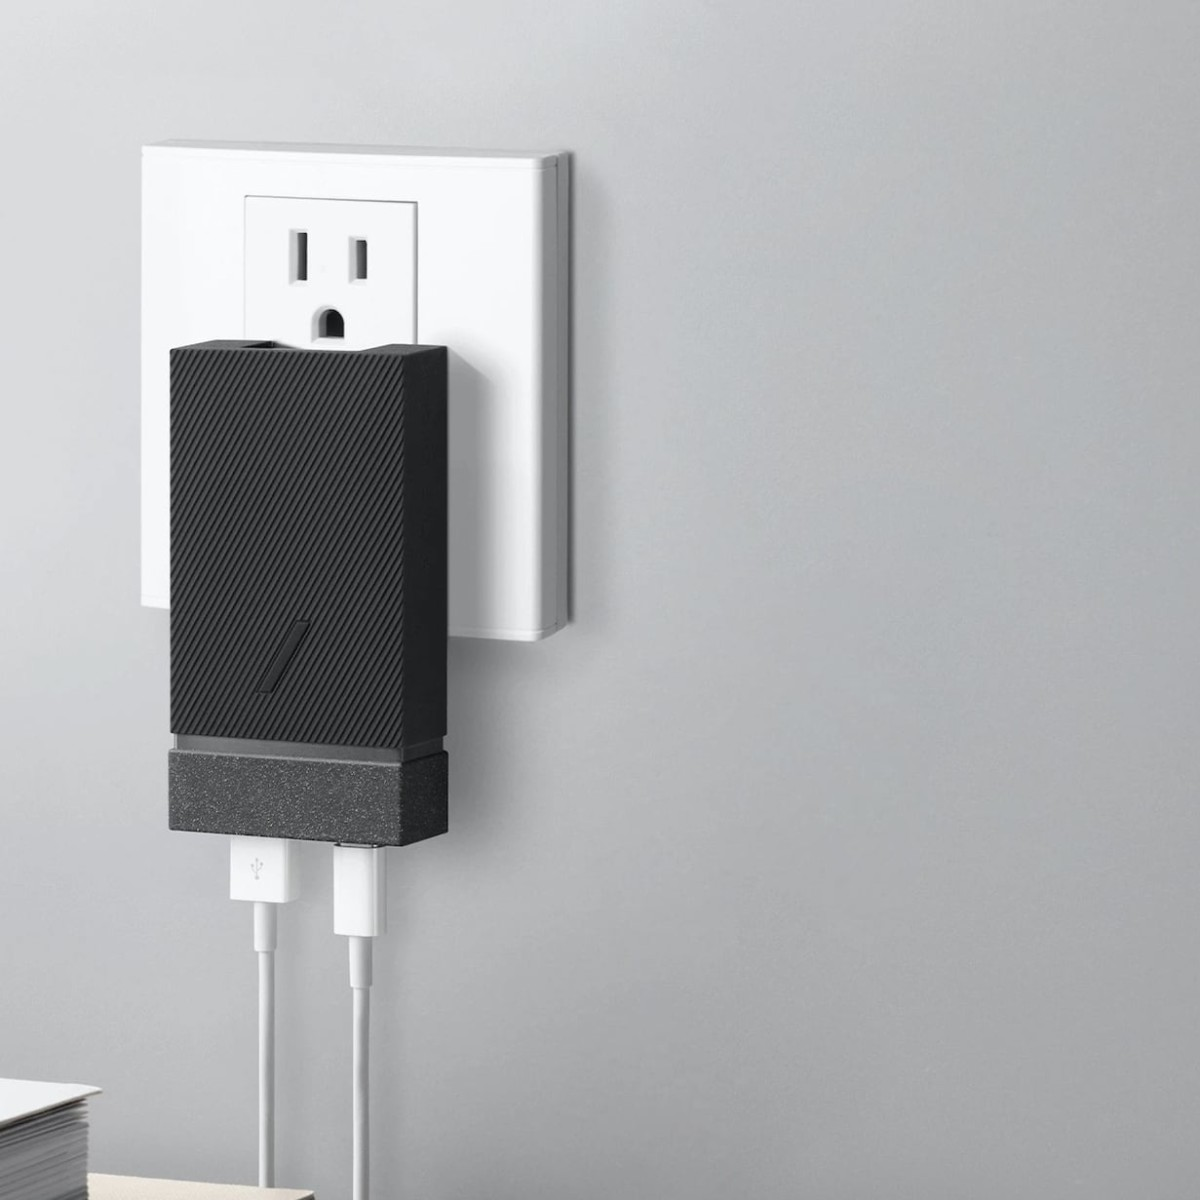 Native Union Smart International Charger PD 18W provides universal power anywhere